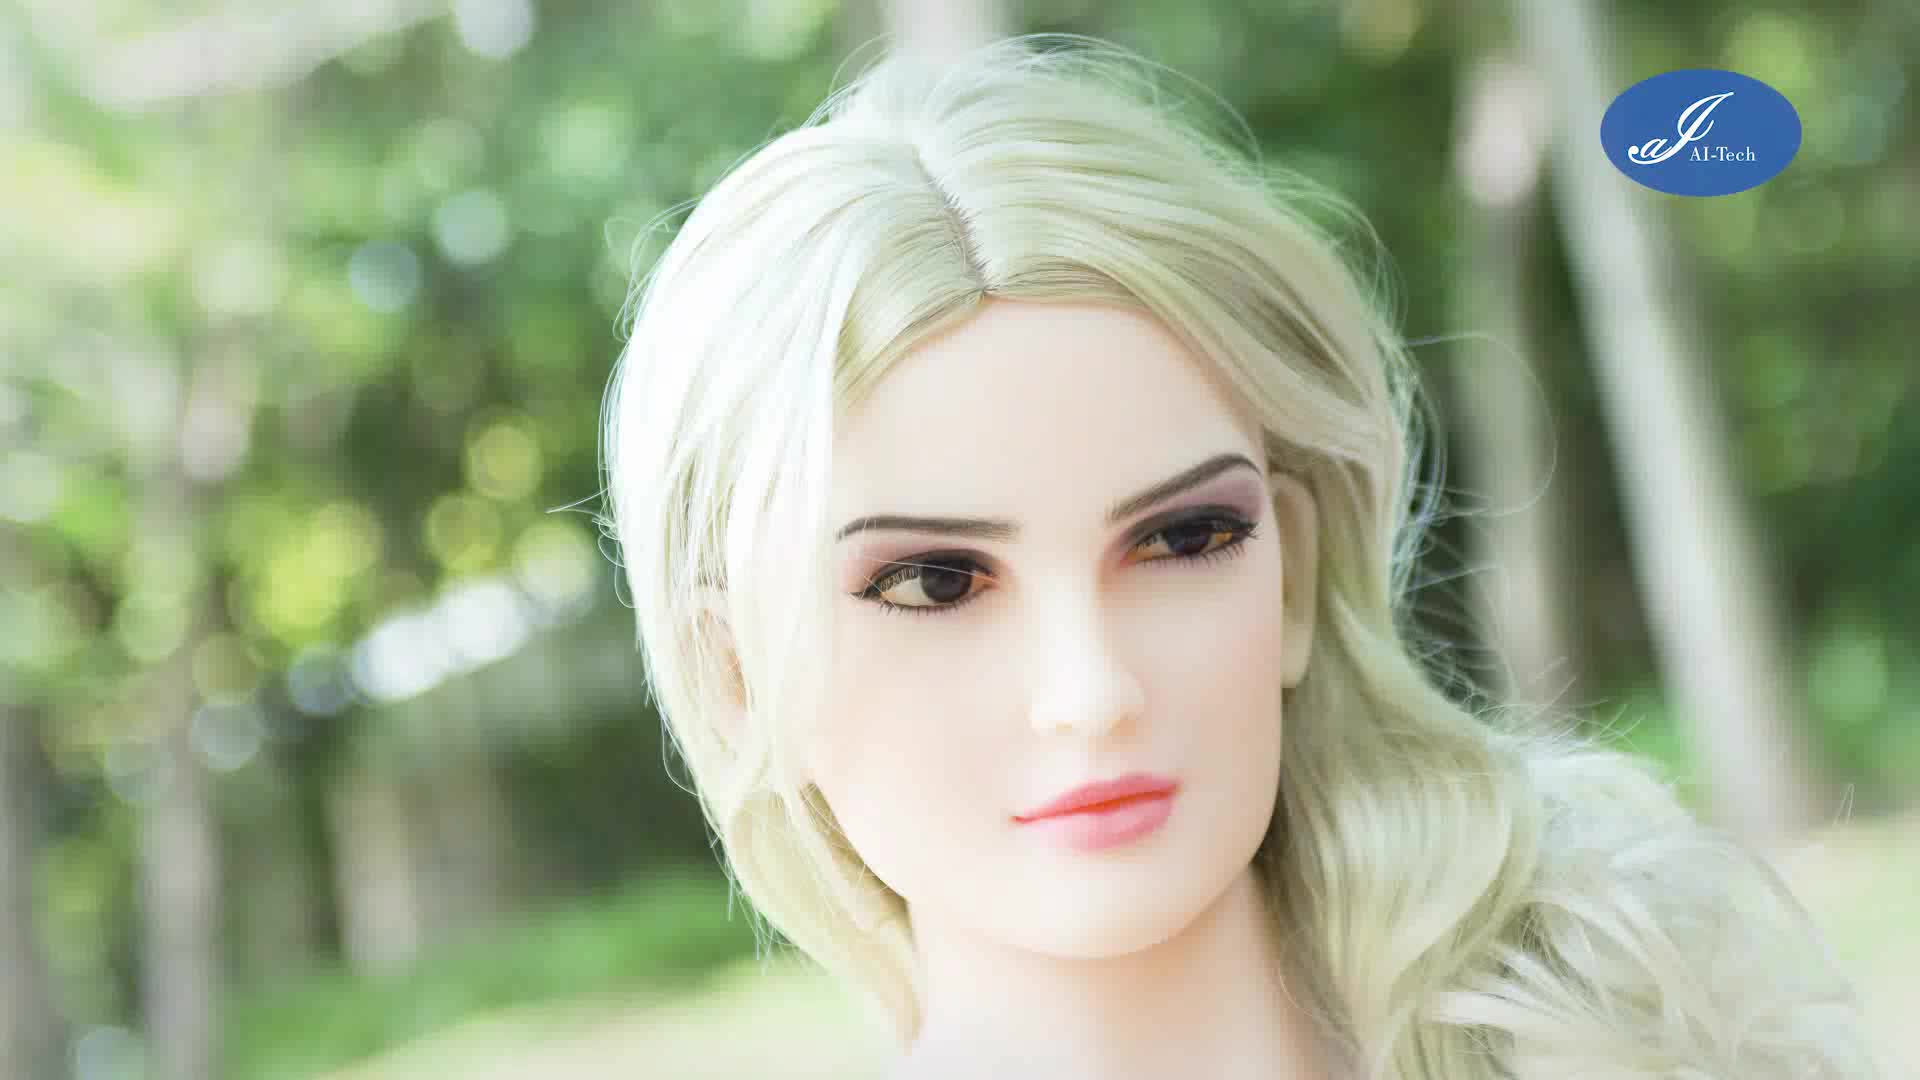 2019 Ai Humanoid Sex Doll Robot Emma Instead Of Japanese Silicone Love Doll  Breasts Full Silicone Real Love Doll - Buy Sex Robot,Silicone Real